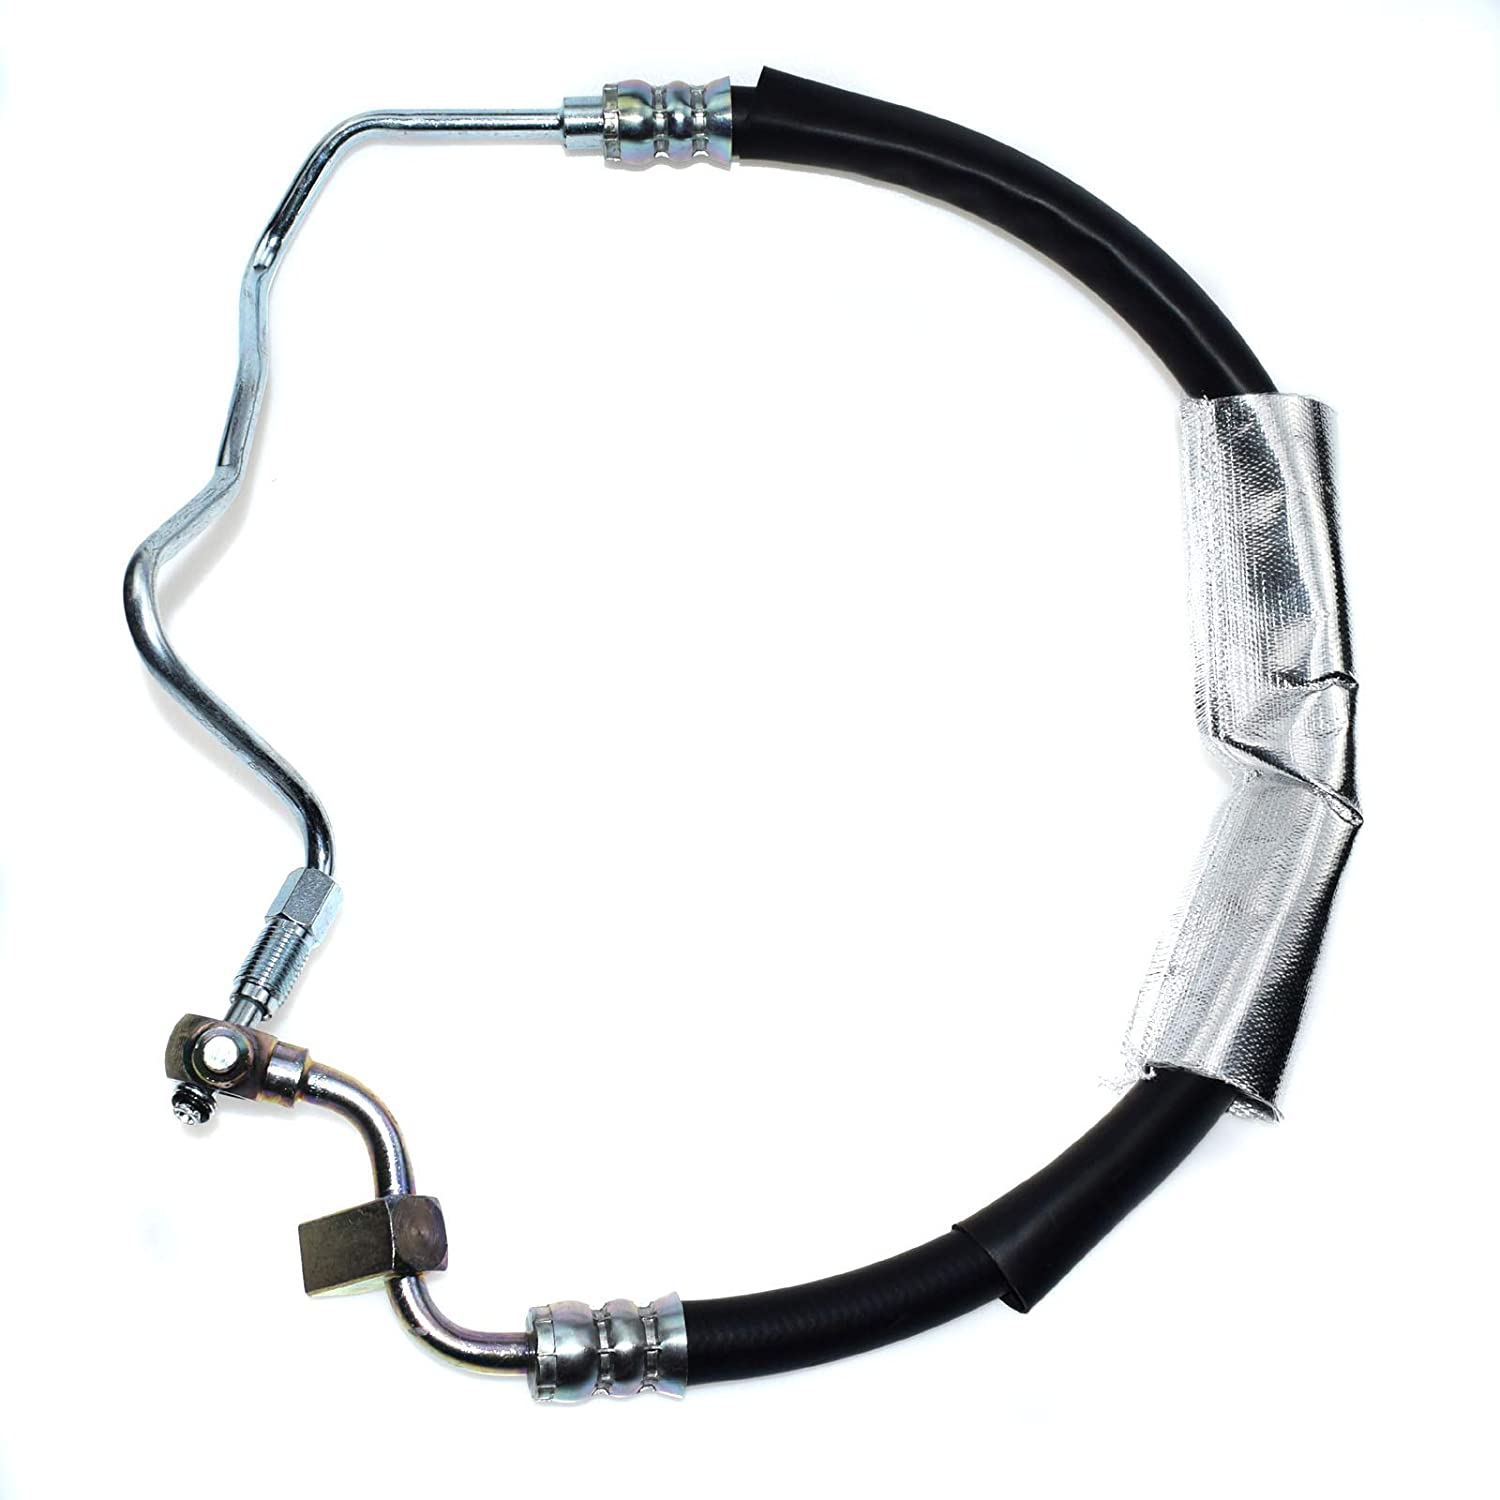 Nissan Maxima 2004-2008 3.5L 55090 80453 364520 Power Steering Pressure Hose Assembly for Nissan Altima 2002-2006